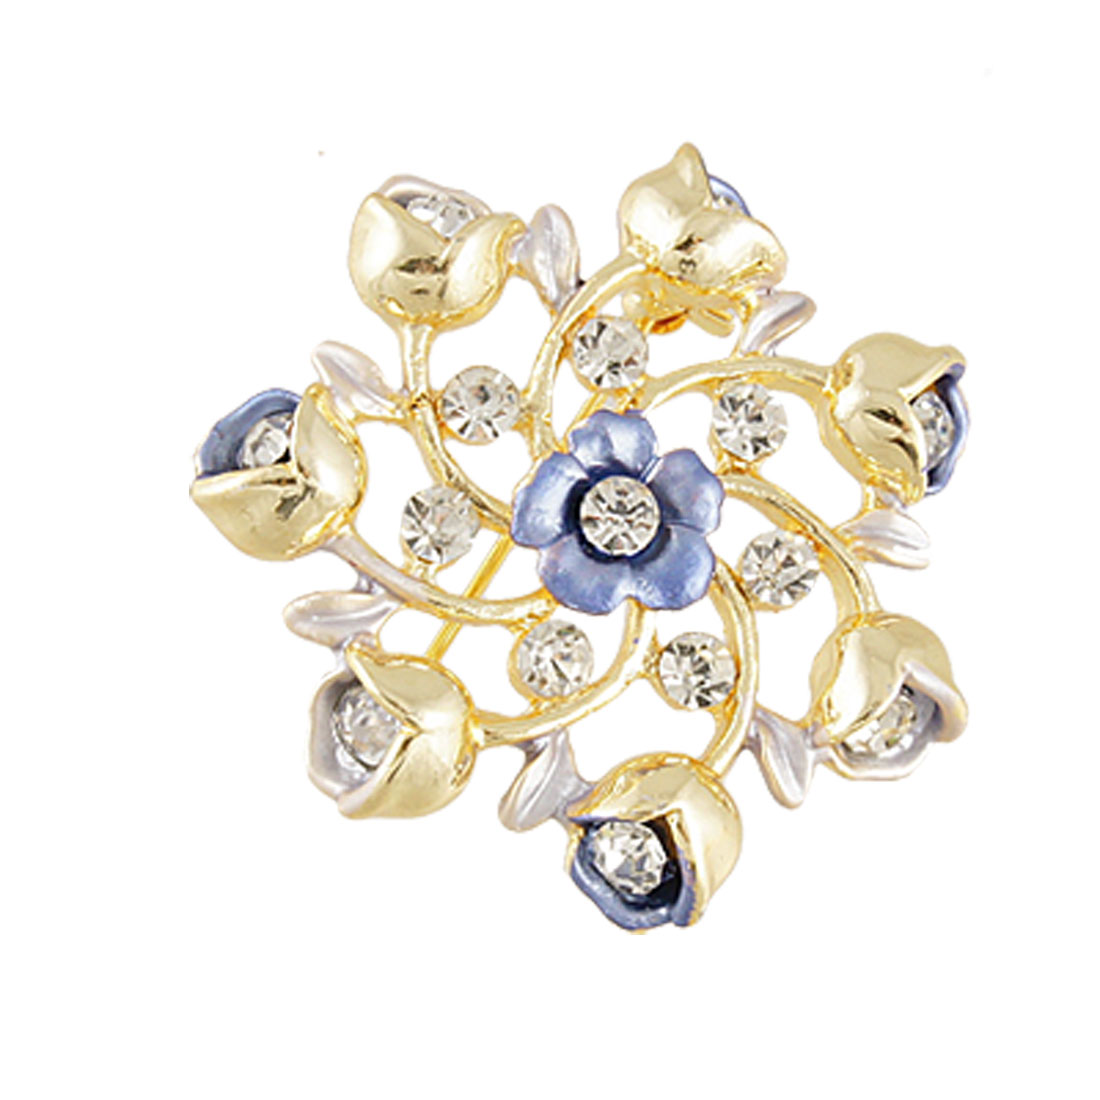 Rhinestone Inlaid Blue Flower Center Metal Pin Brooch Fashion Jewelry